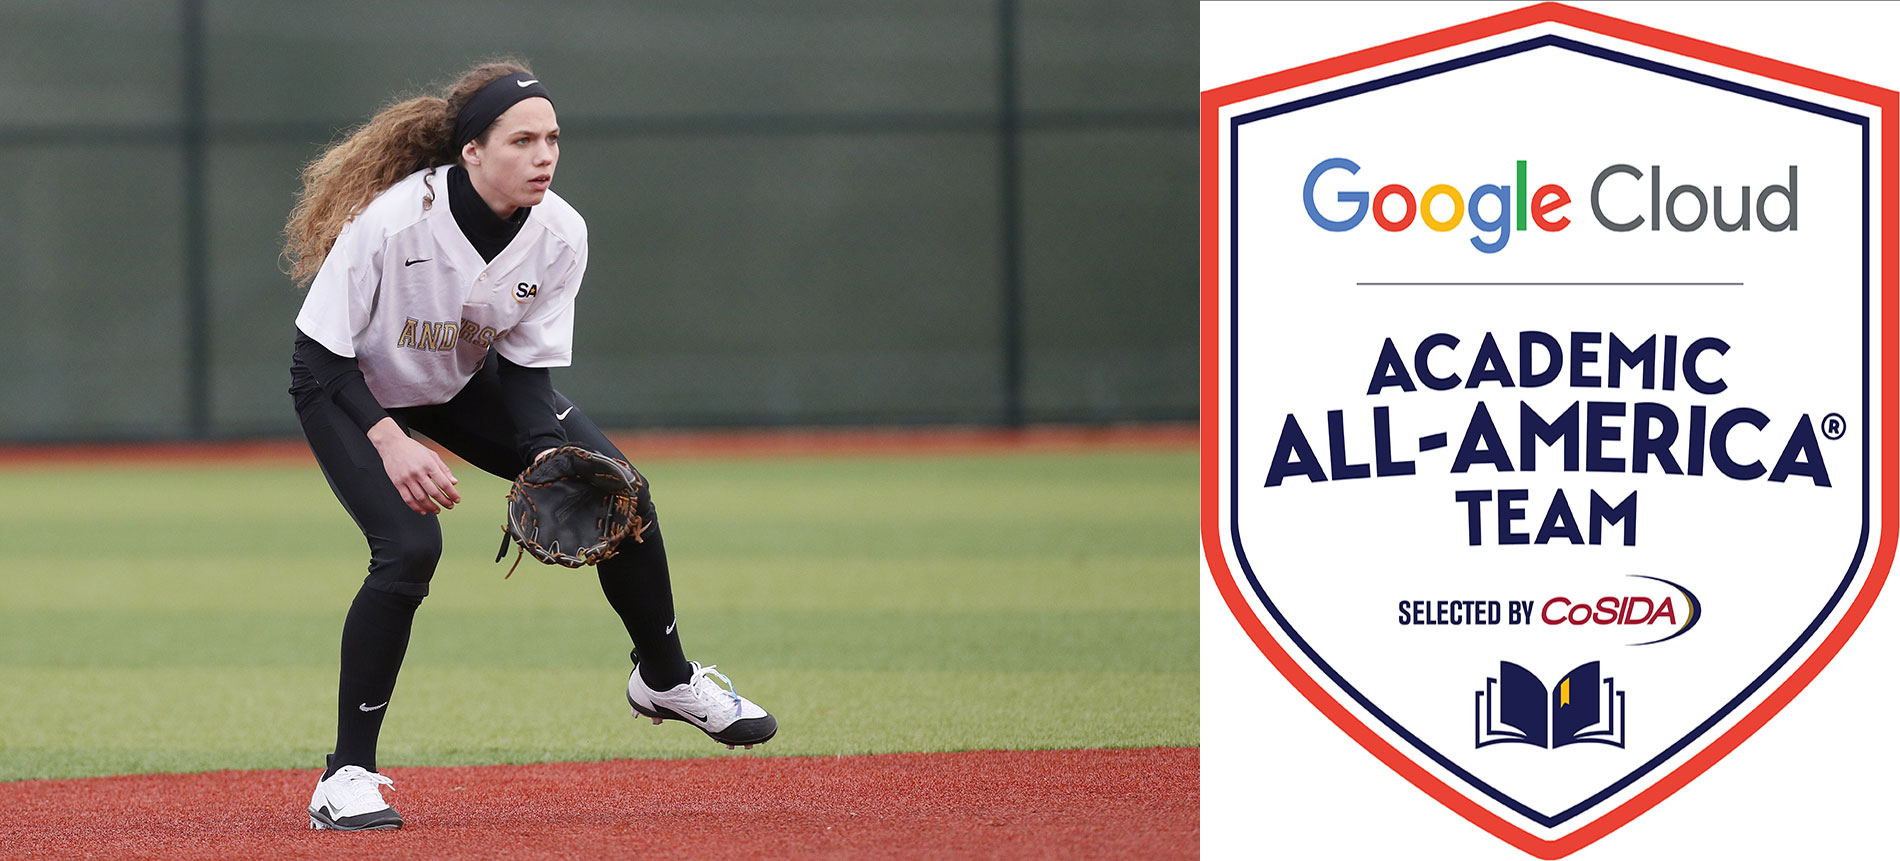 Grant Lands on the 2019 Google Cloud Academic All-America DII Softball Team